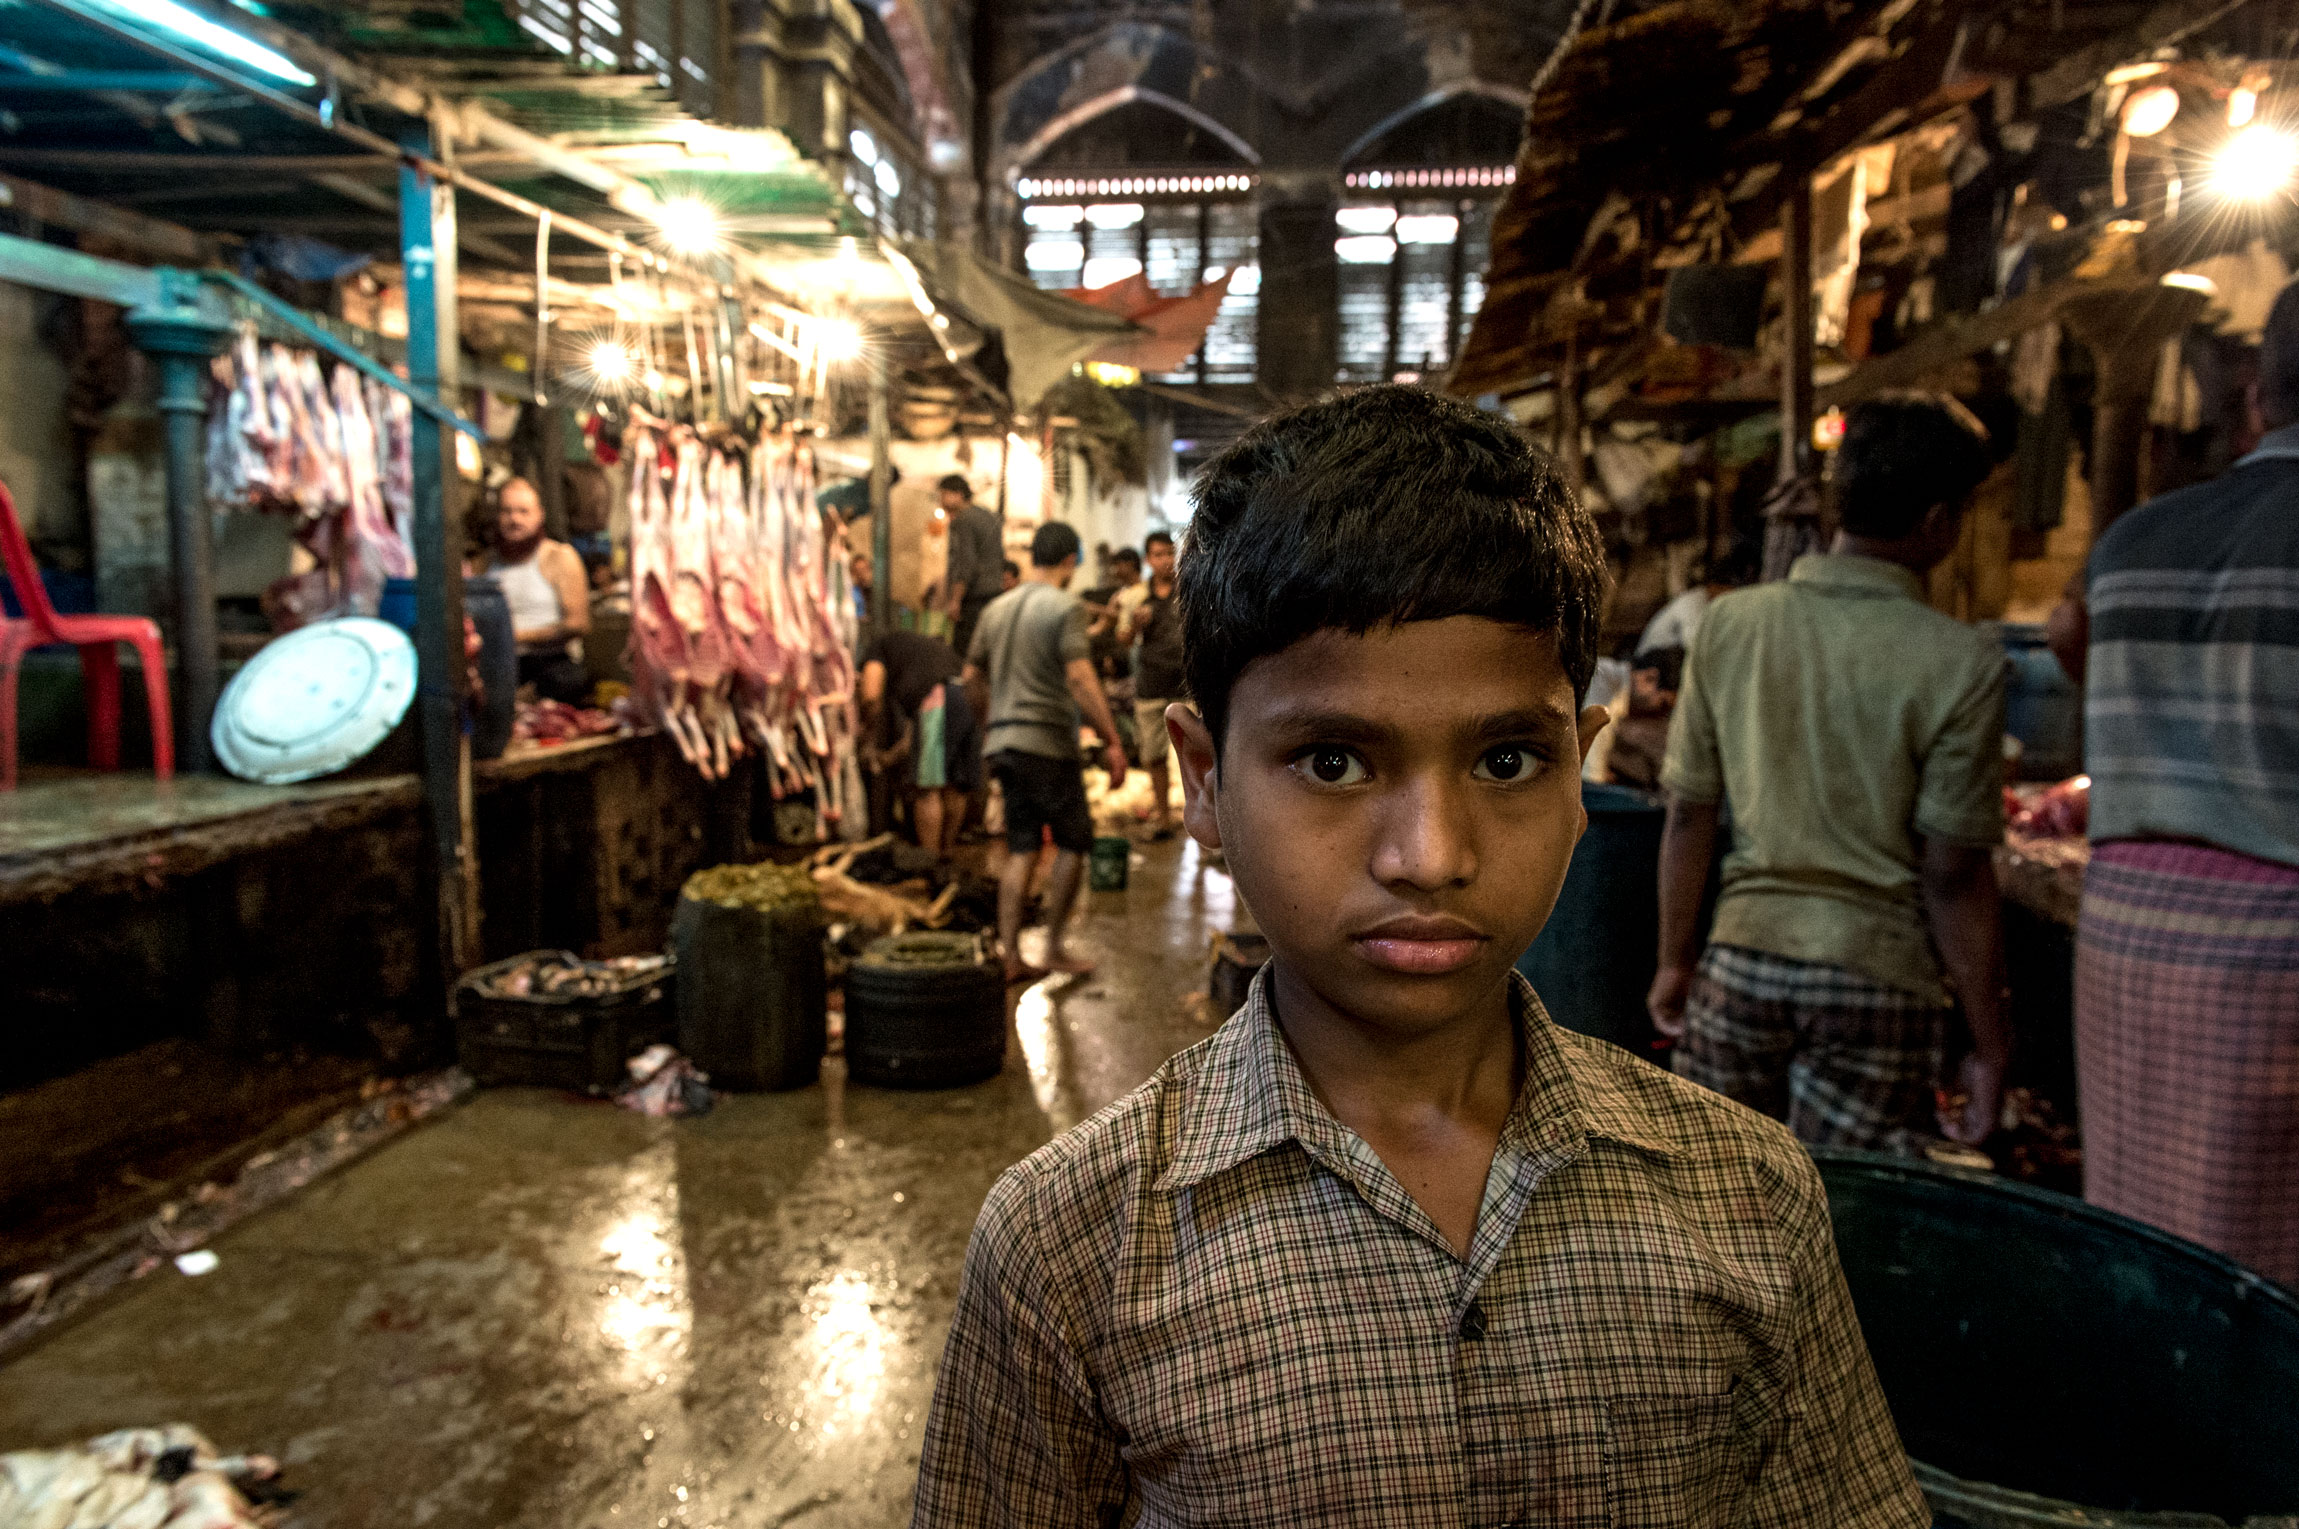 New Market Kolkata India slaughterhouse | a child worker posing in the meat hall of New Market.